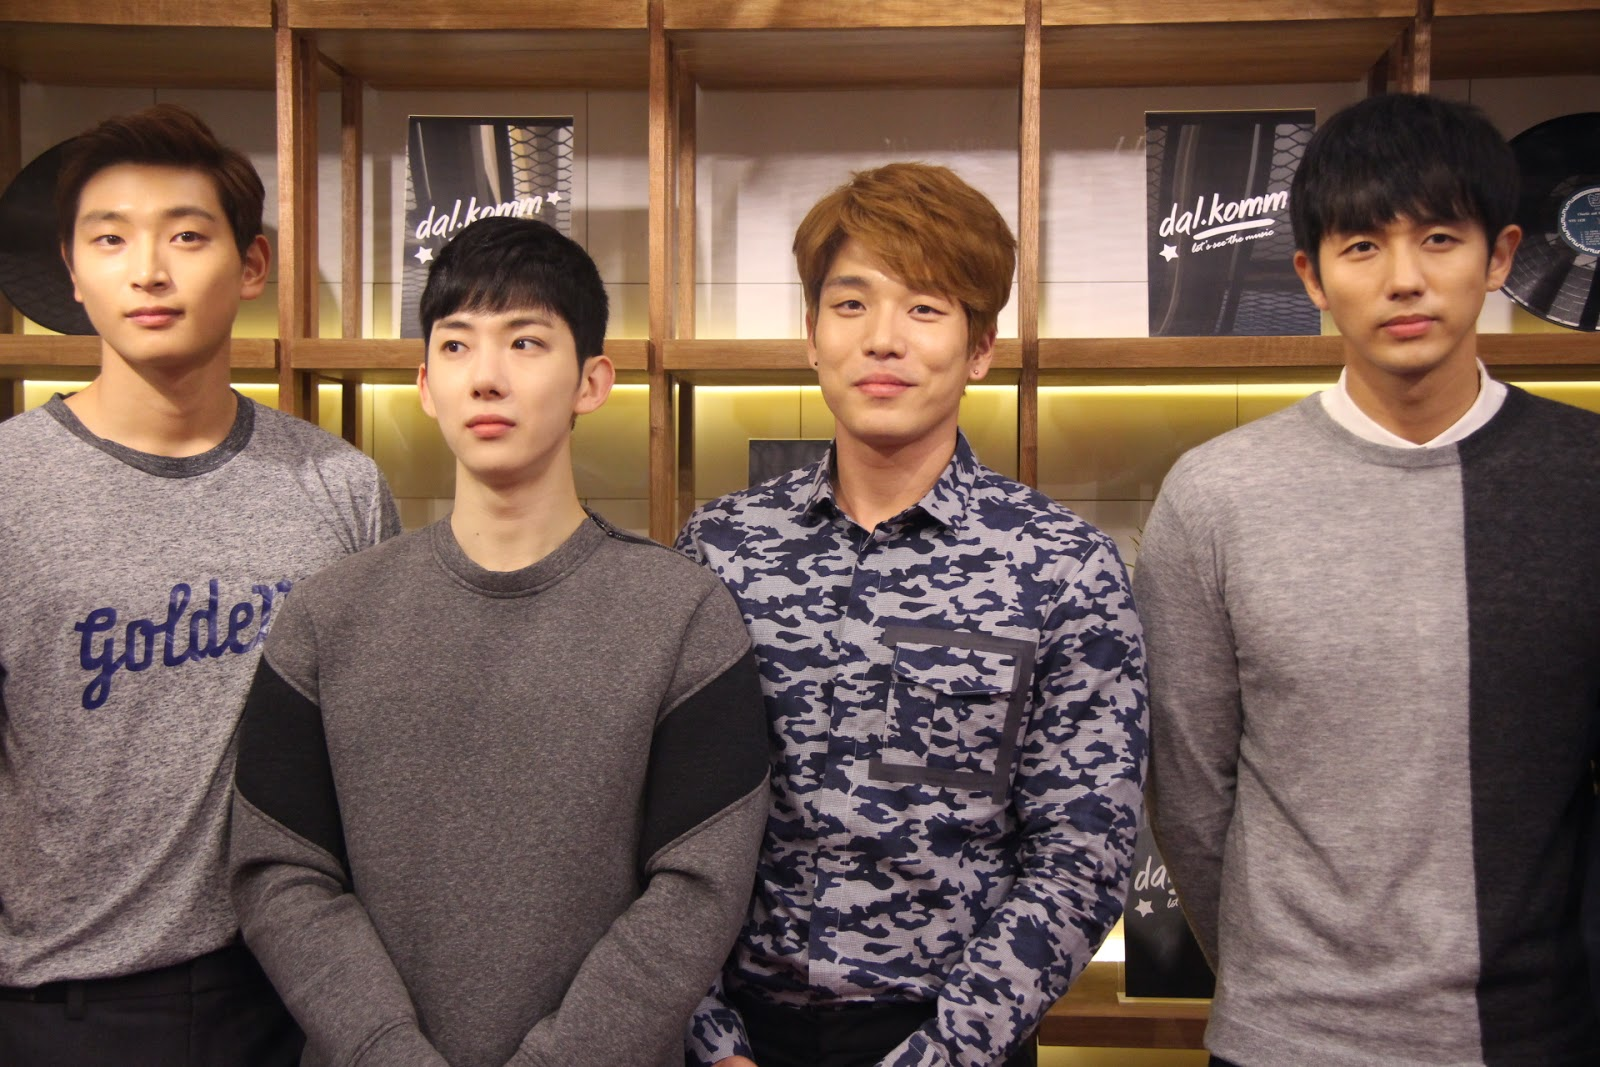 [Photos] 2AM at dal.komm COFFEE Grand Opening